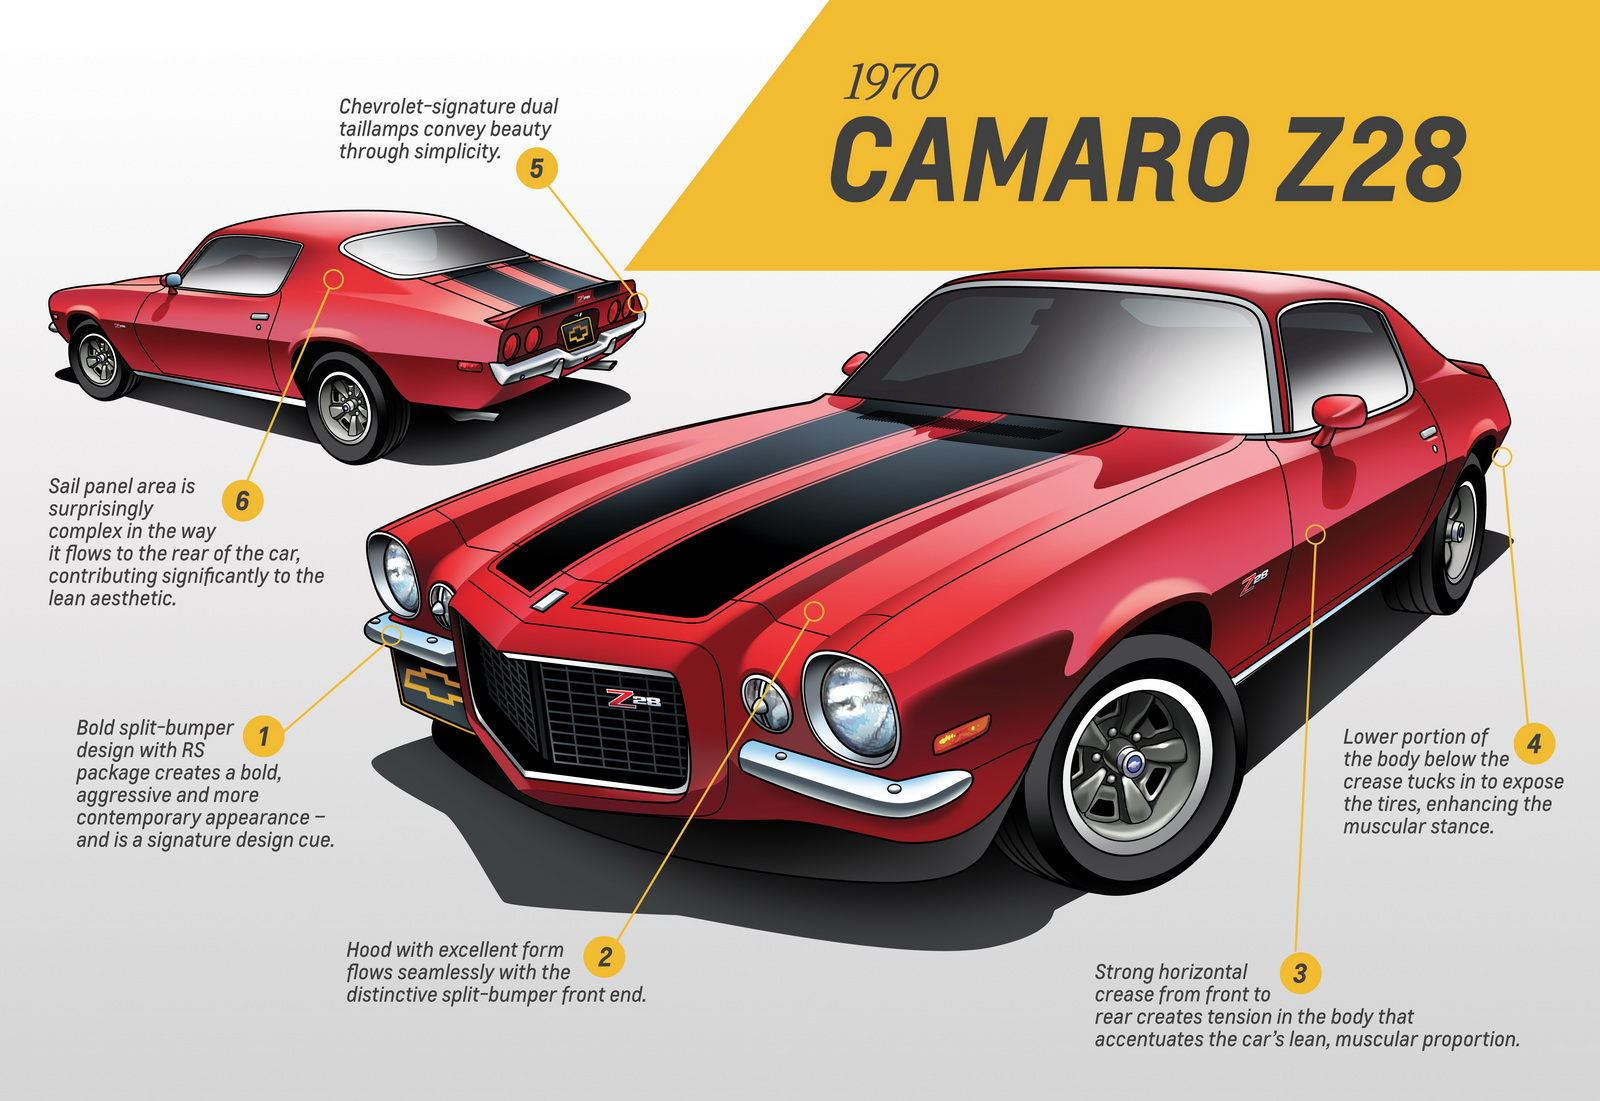 Second-generation Camaro design analysis by Ken Parkinson, executive director of design, Chevrolet Trucks and Global Architecture.